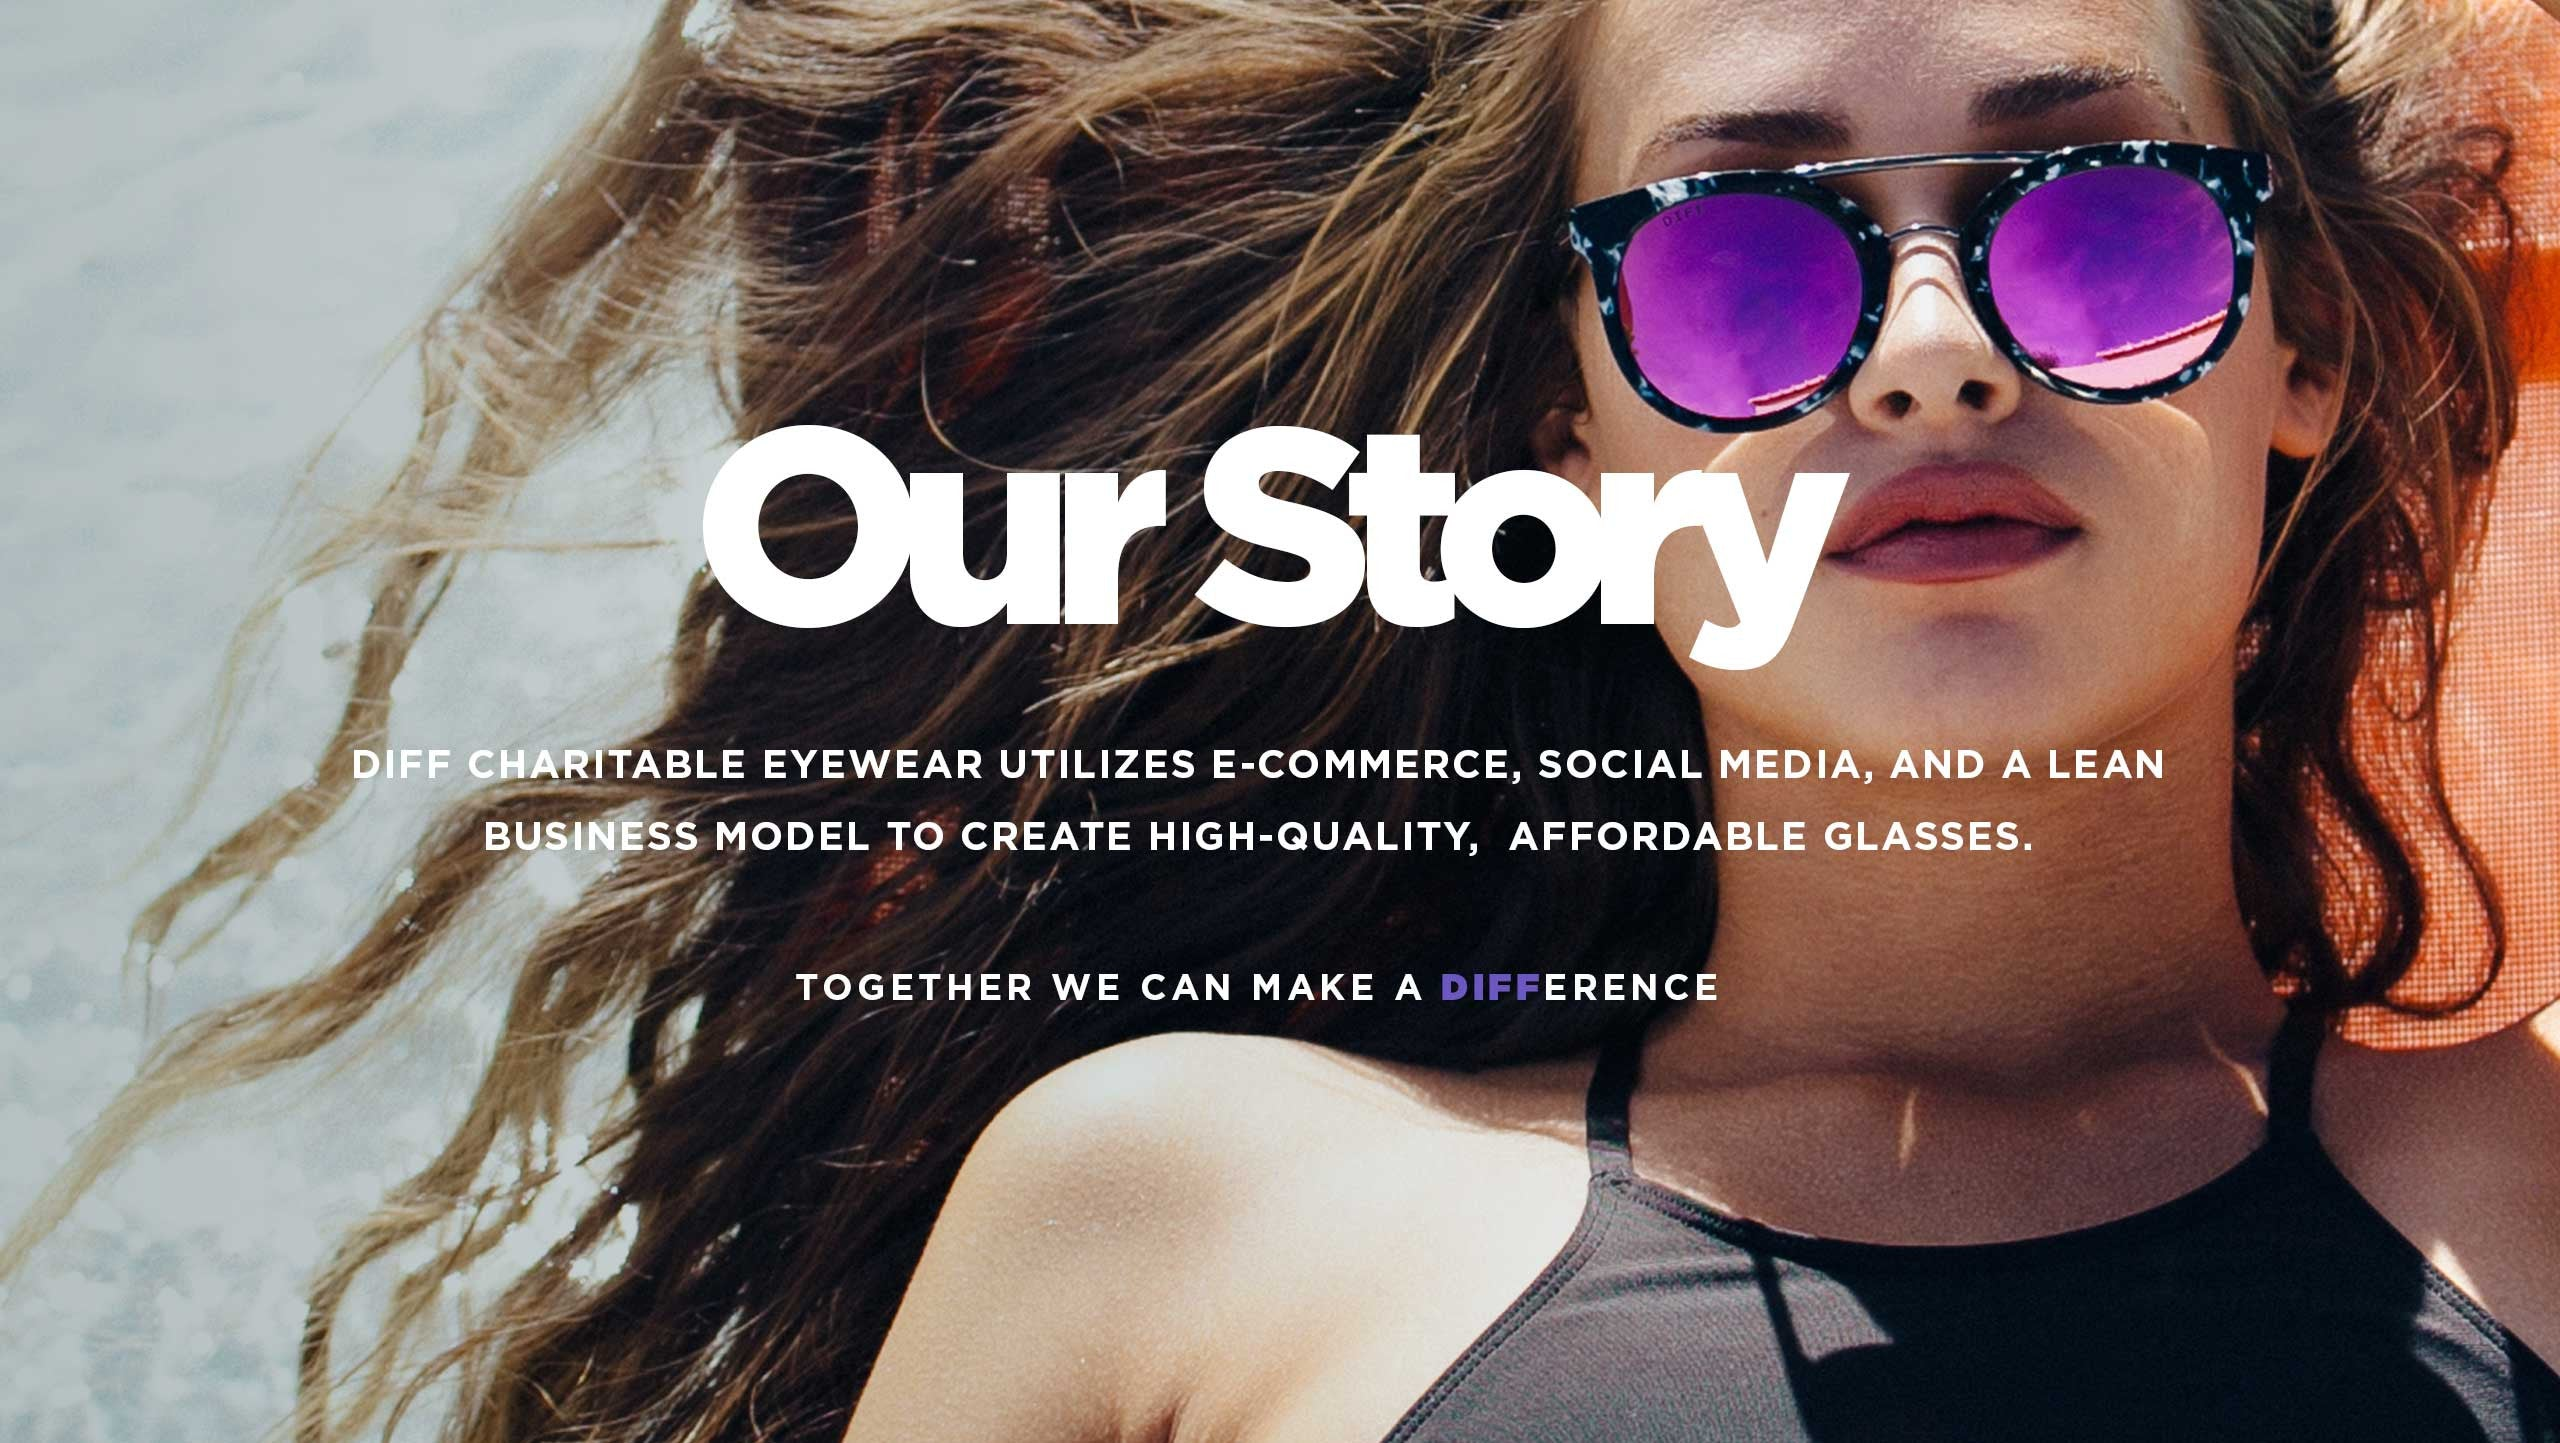 about us by diff eyewear